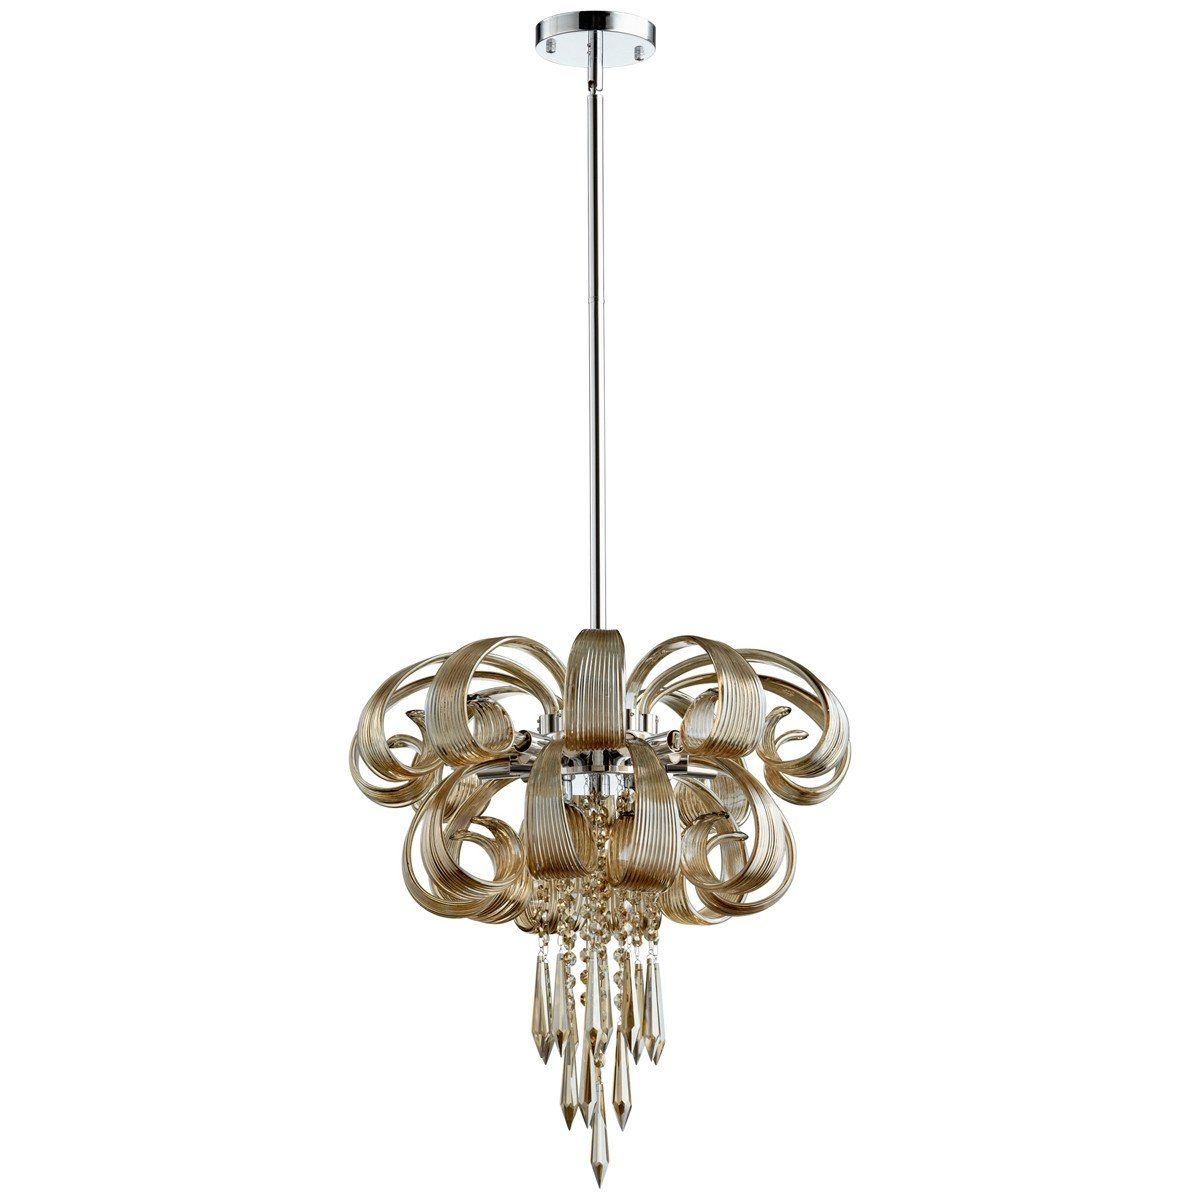 Cyan design cindy lou who chandelier aloadofball Image collections